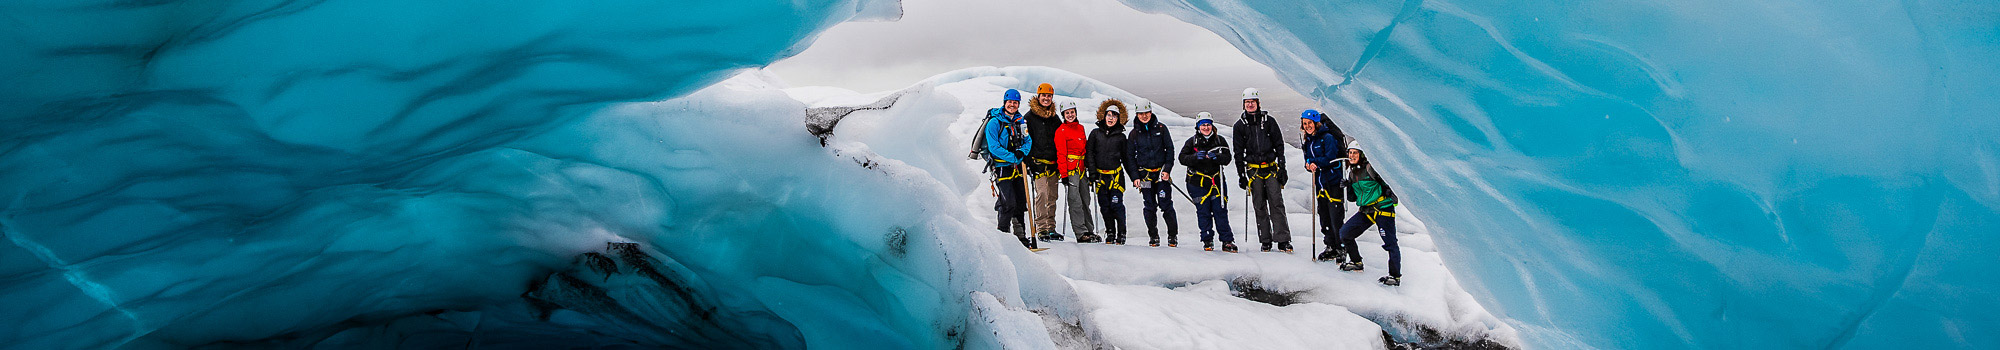 glacier hiking iceland